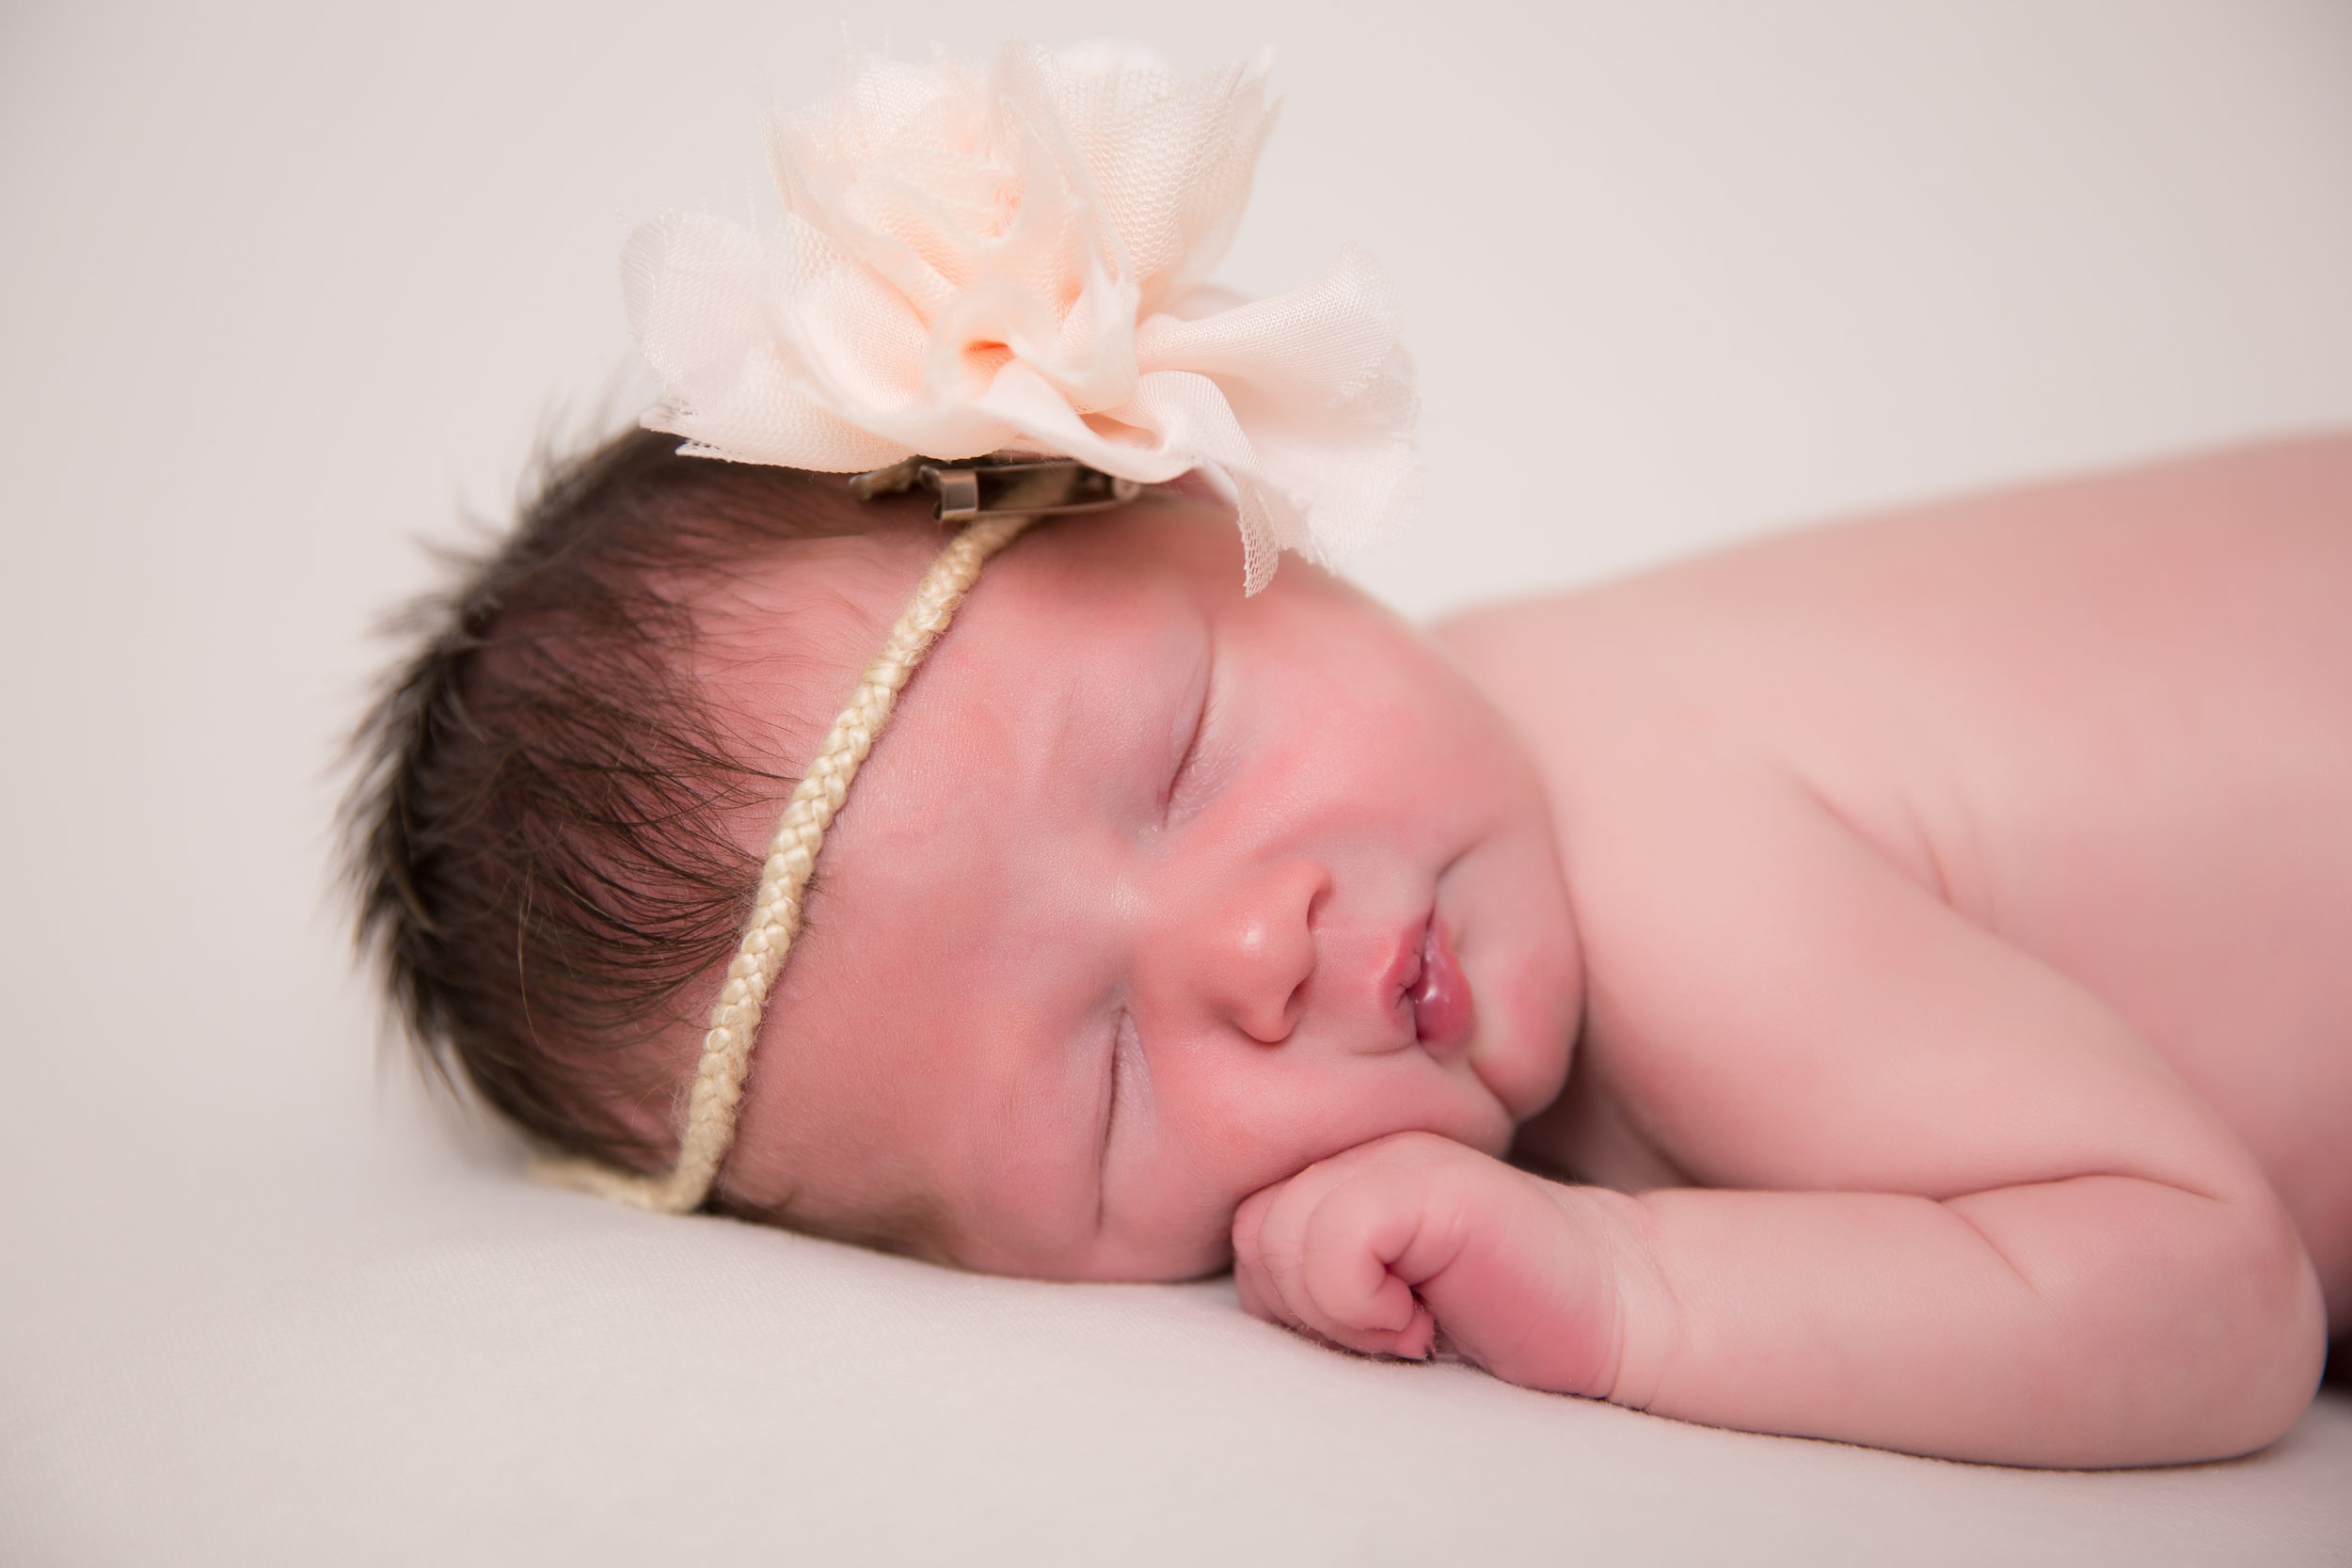 Paizlee joined the world on August 13th weighing 6 pounds 9 ounces!! At 7 days new, Paisley came into the studio to show us how modeling is done.She was such a precious little angel and handled her pictures amazingly! Grandma, auntie, and mom all enjoyed her precious poses :)